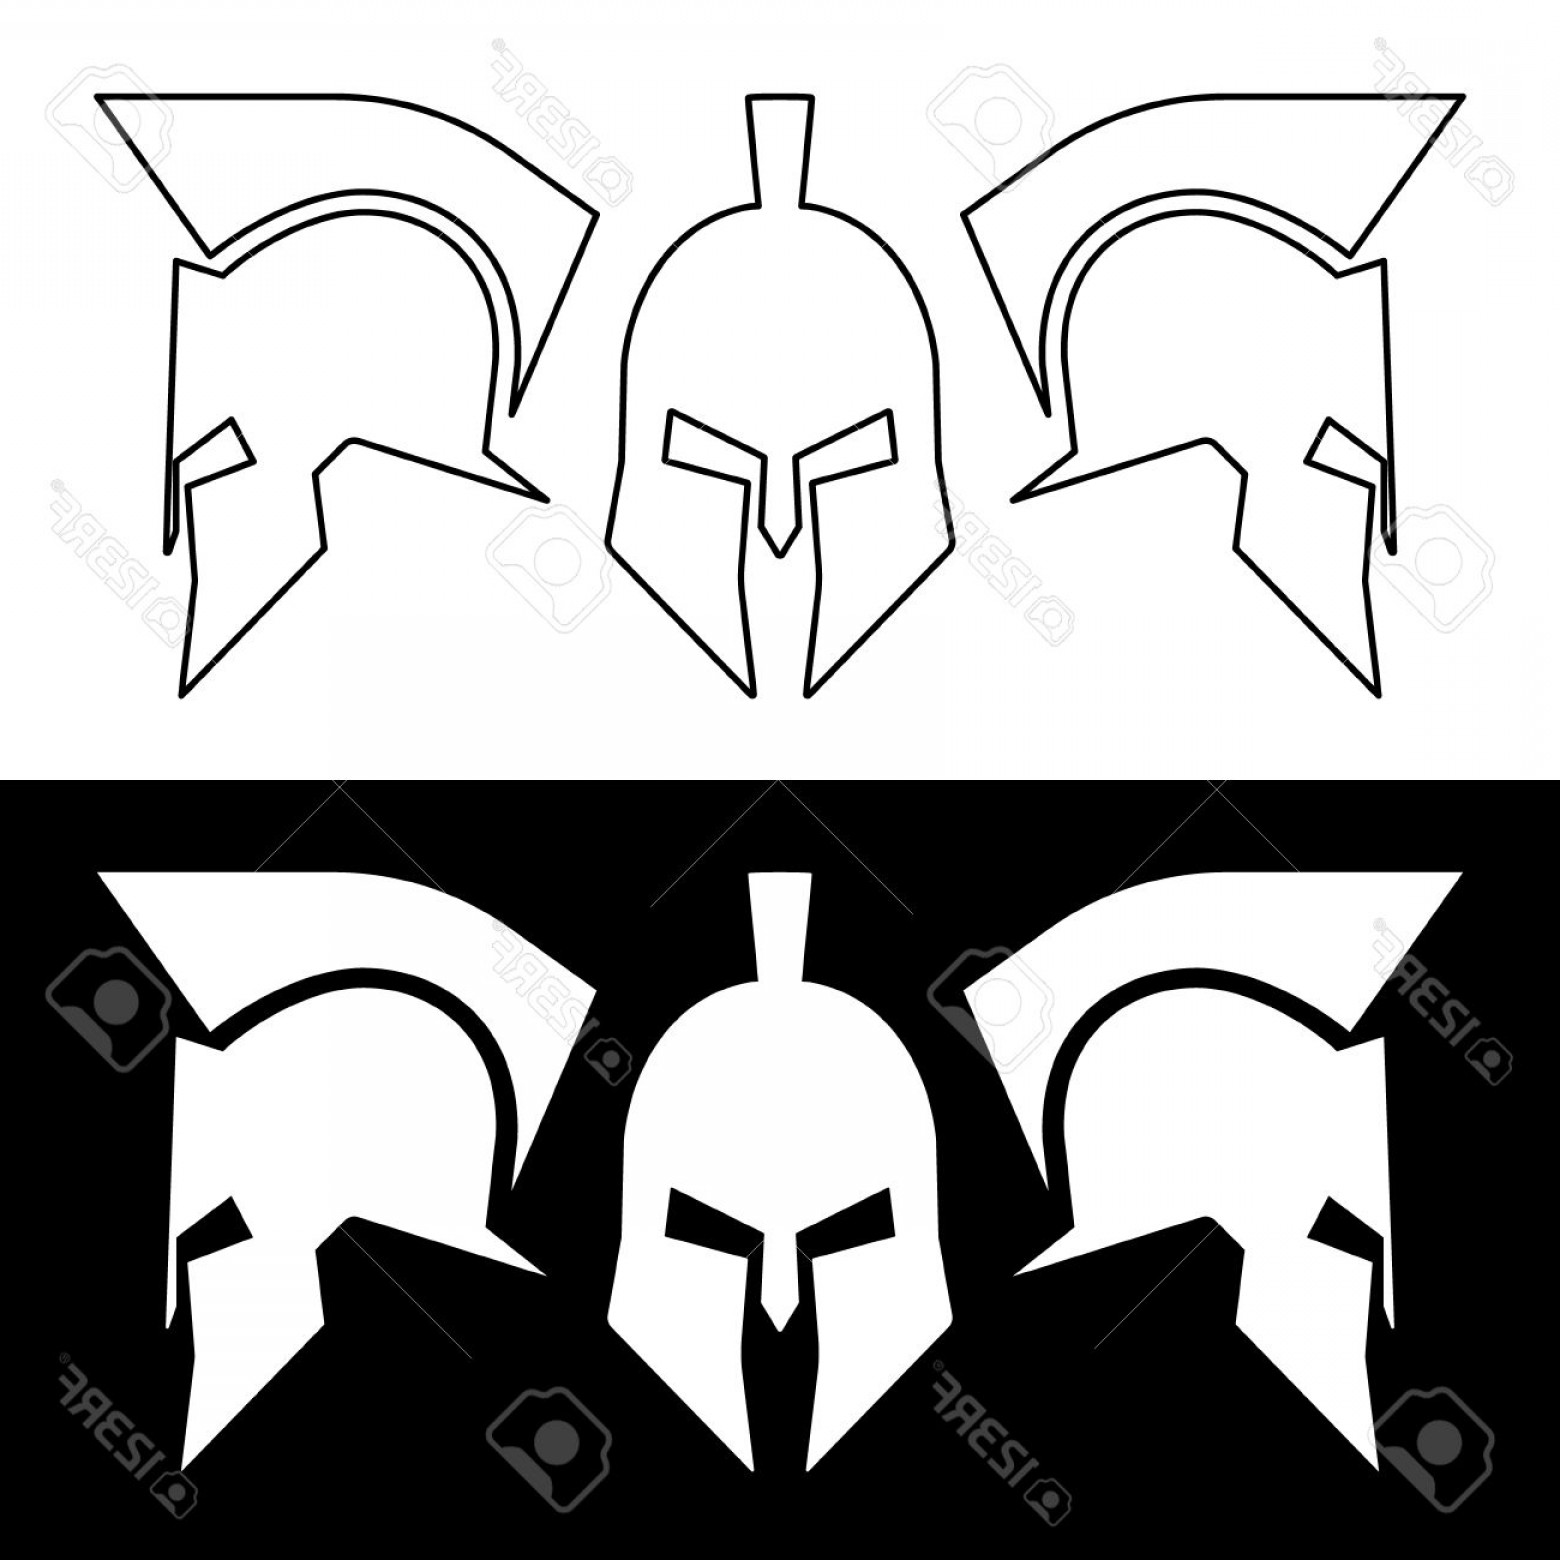 Boba Fett Vector Black And White: Photostock Vector Ancient Roman Or Greek Helmet Helmets Front And Side View Silhouette Line Design Vector Illustration